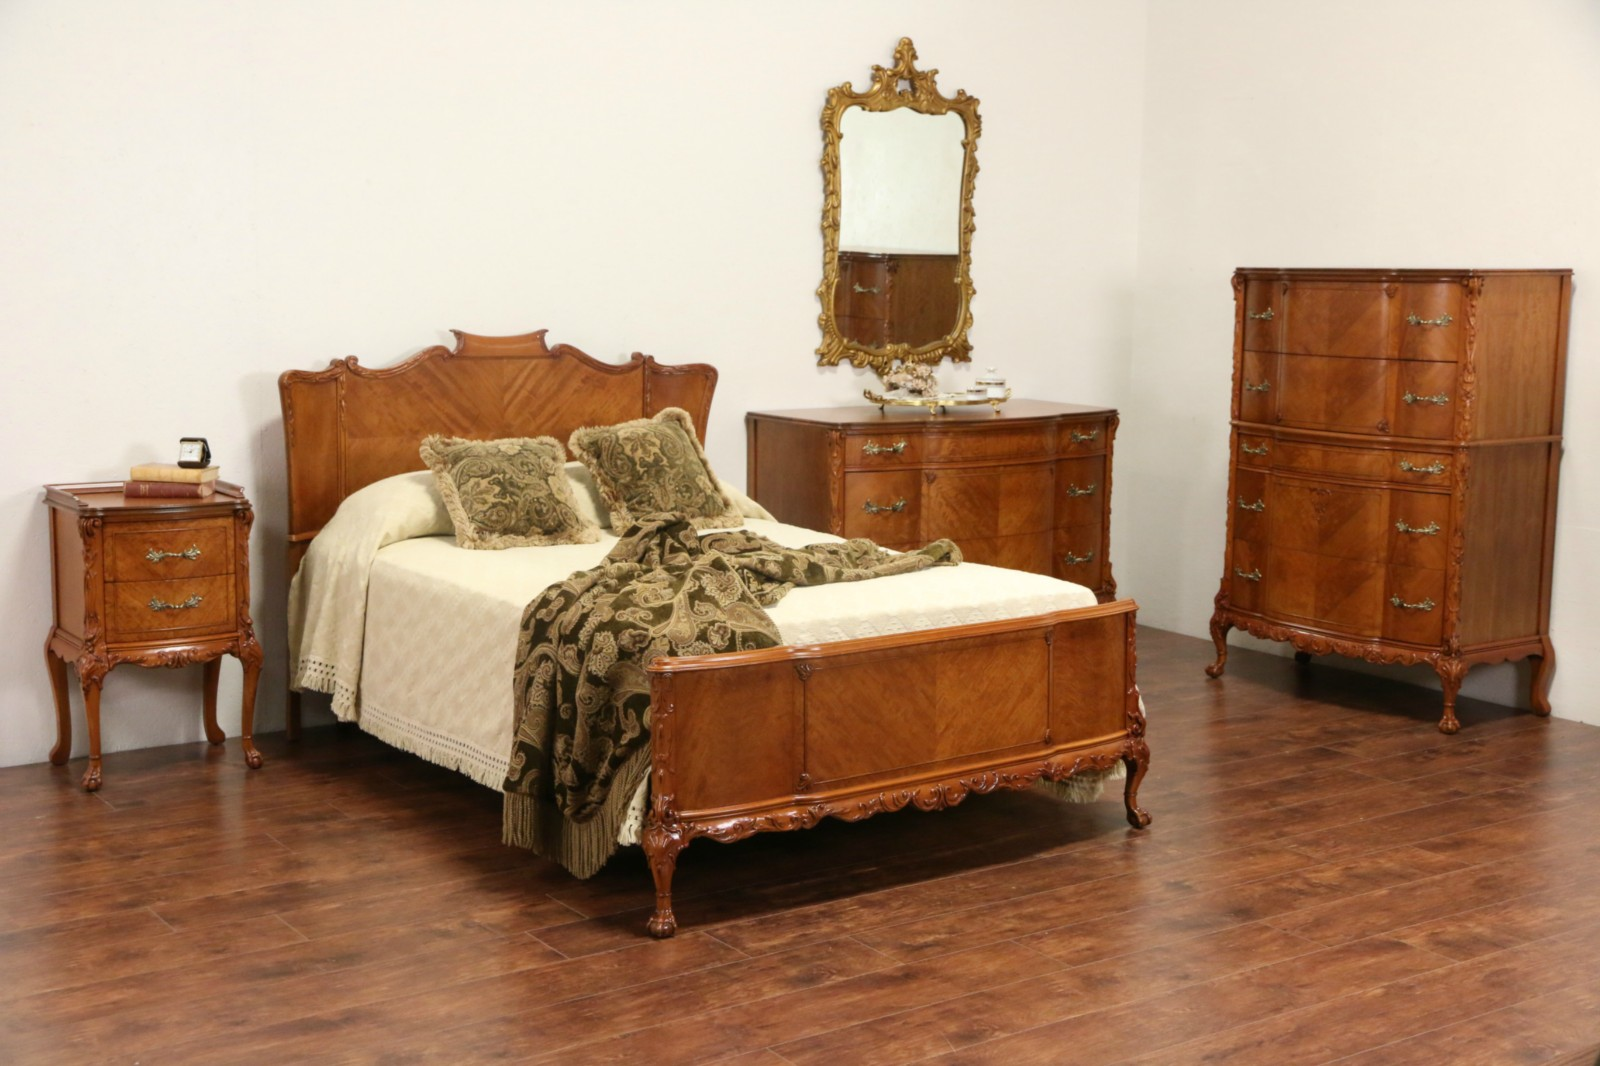 SOLD French Style 1940s Satinwood Full Size 1940s